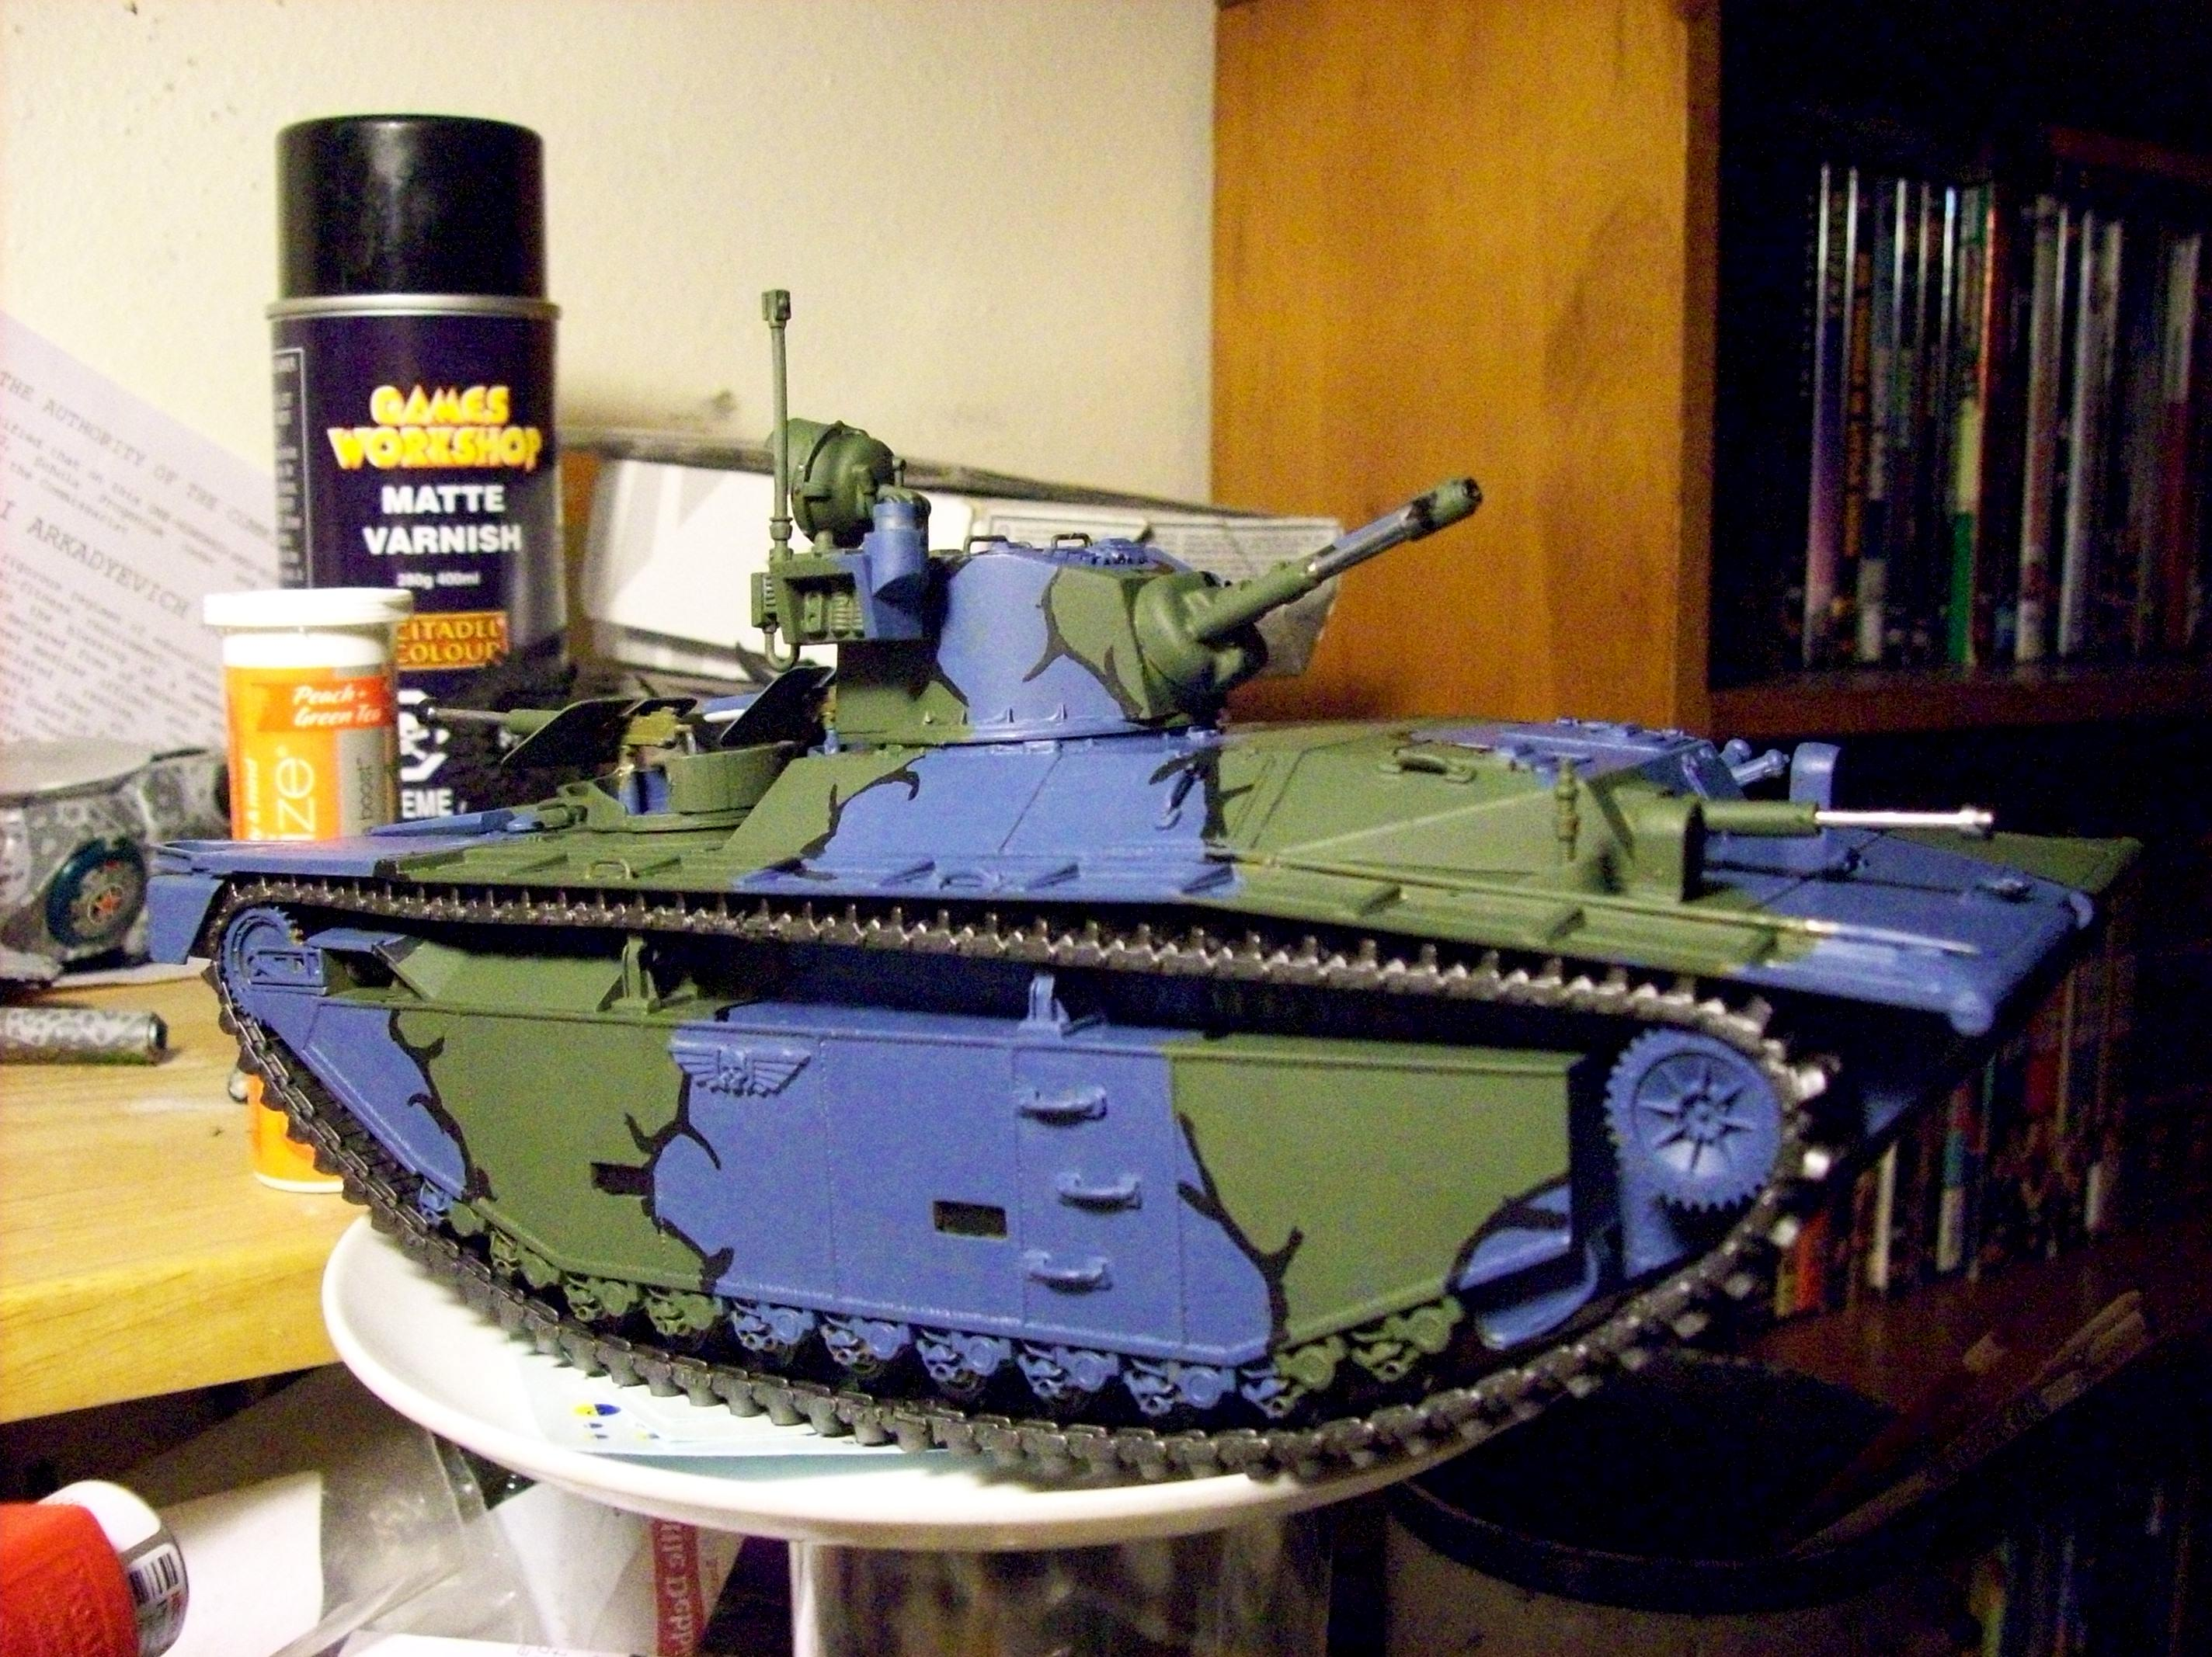 Camouflage, Conversion, Gator, Imperial Guard, Lvt, Tank